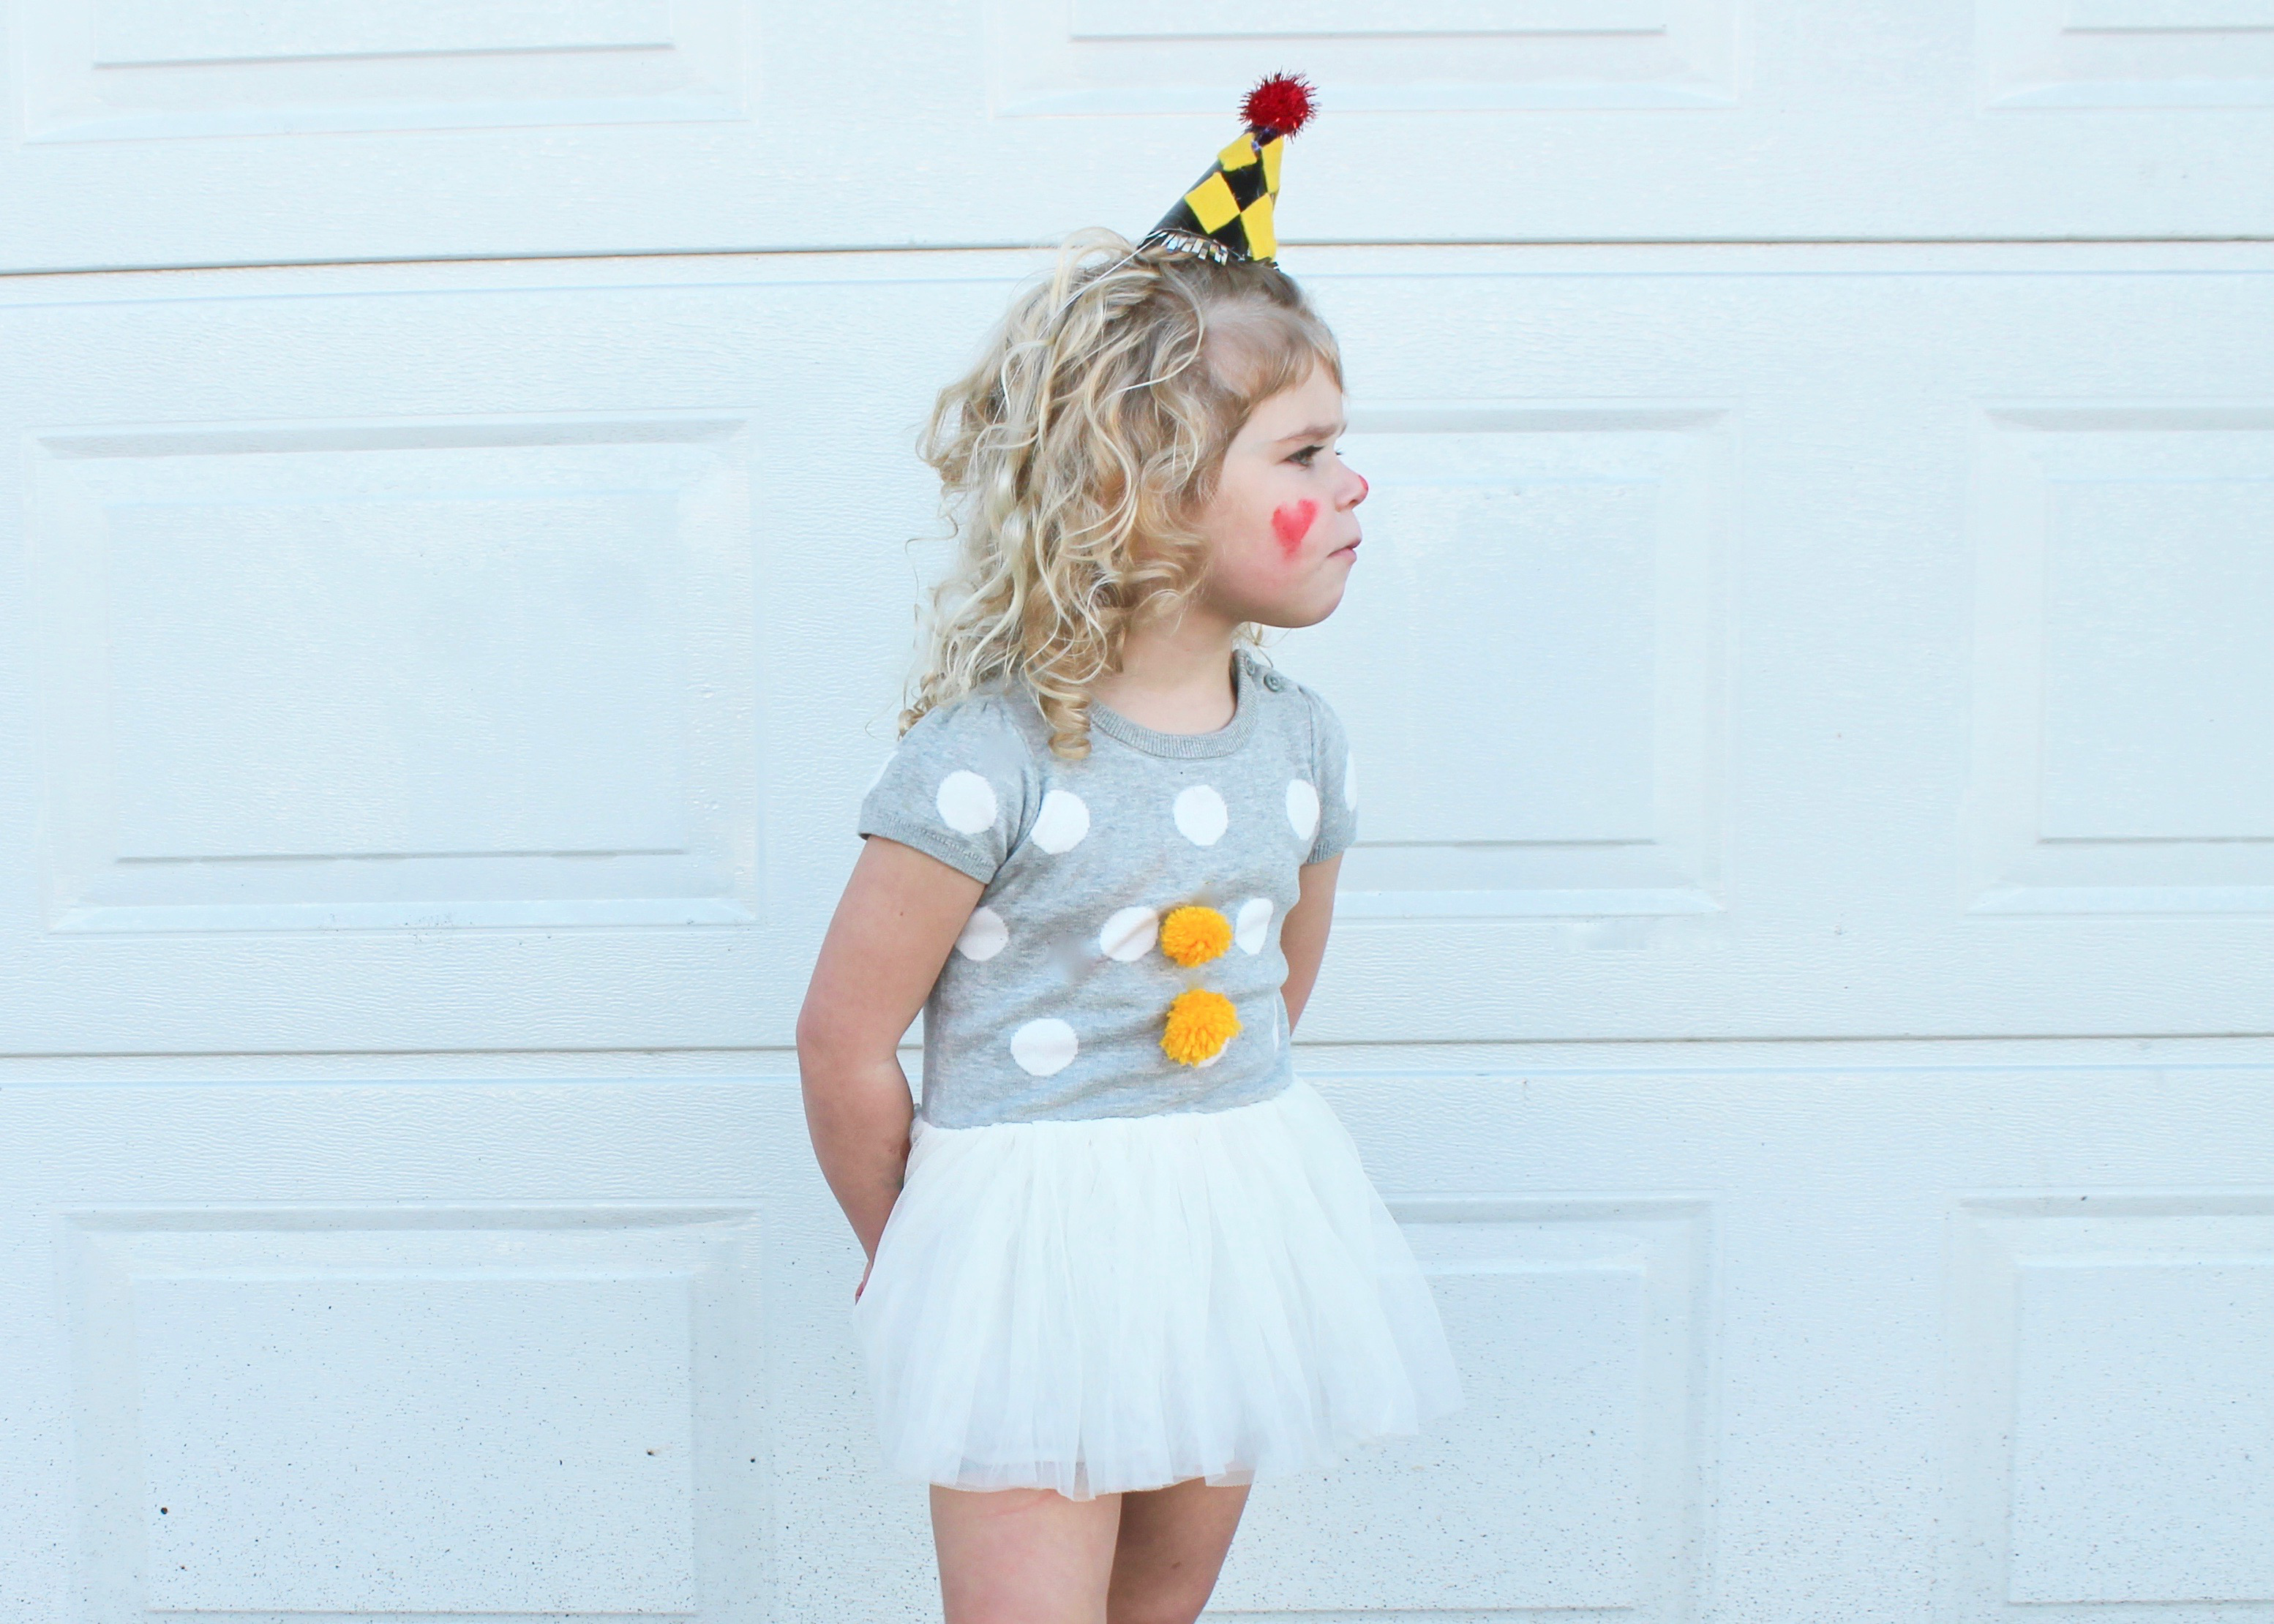 Girl Clown Costume | Circus Costume | Group Costume Idea | Family Costume Ideas | Fun Halloween Costumes for Kids